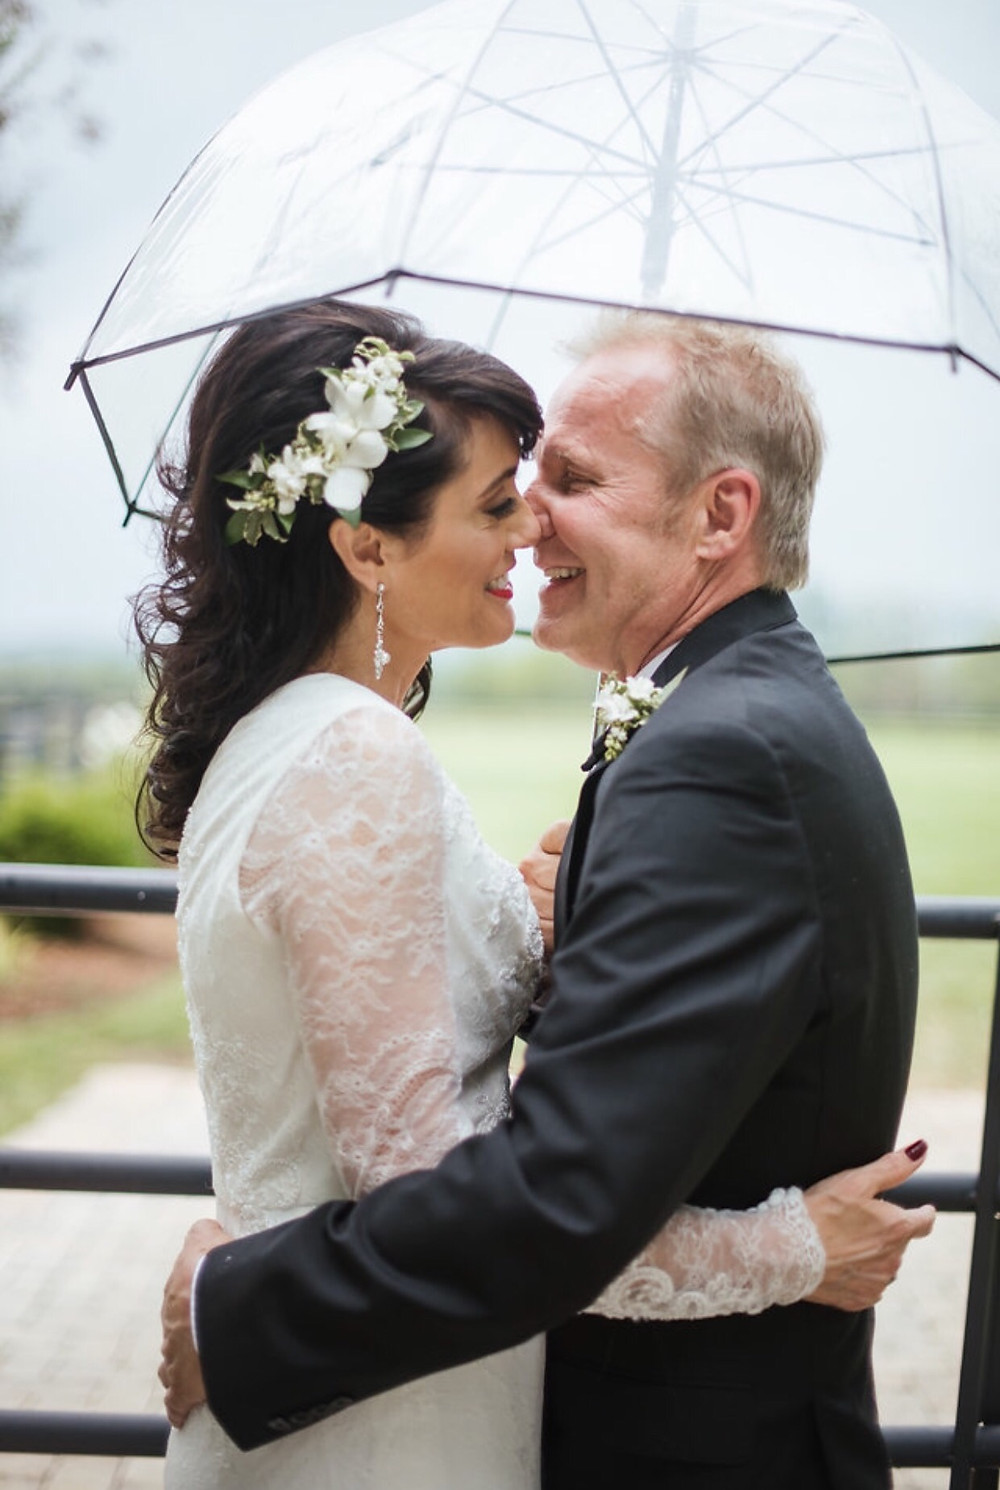 Franklin, TN Wedding + Kisses in the Rain